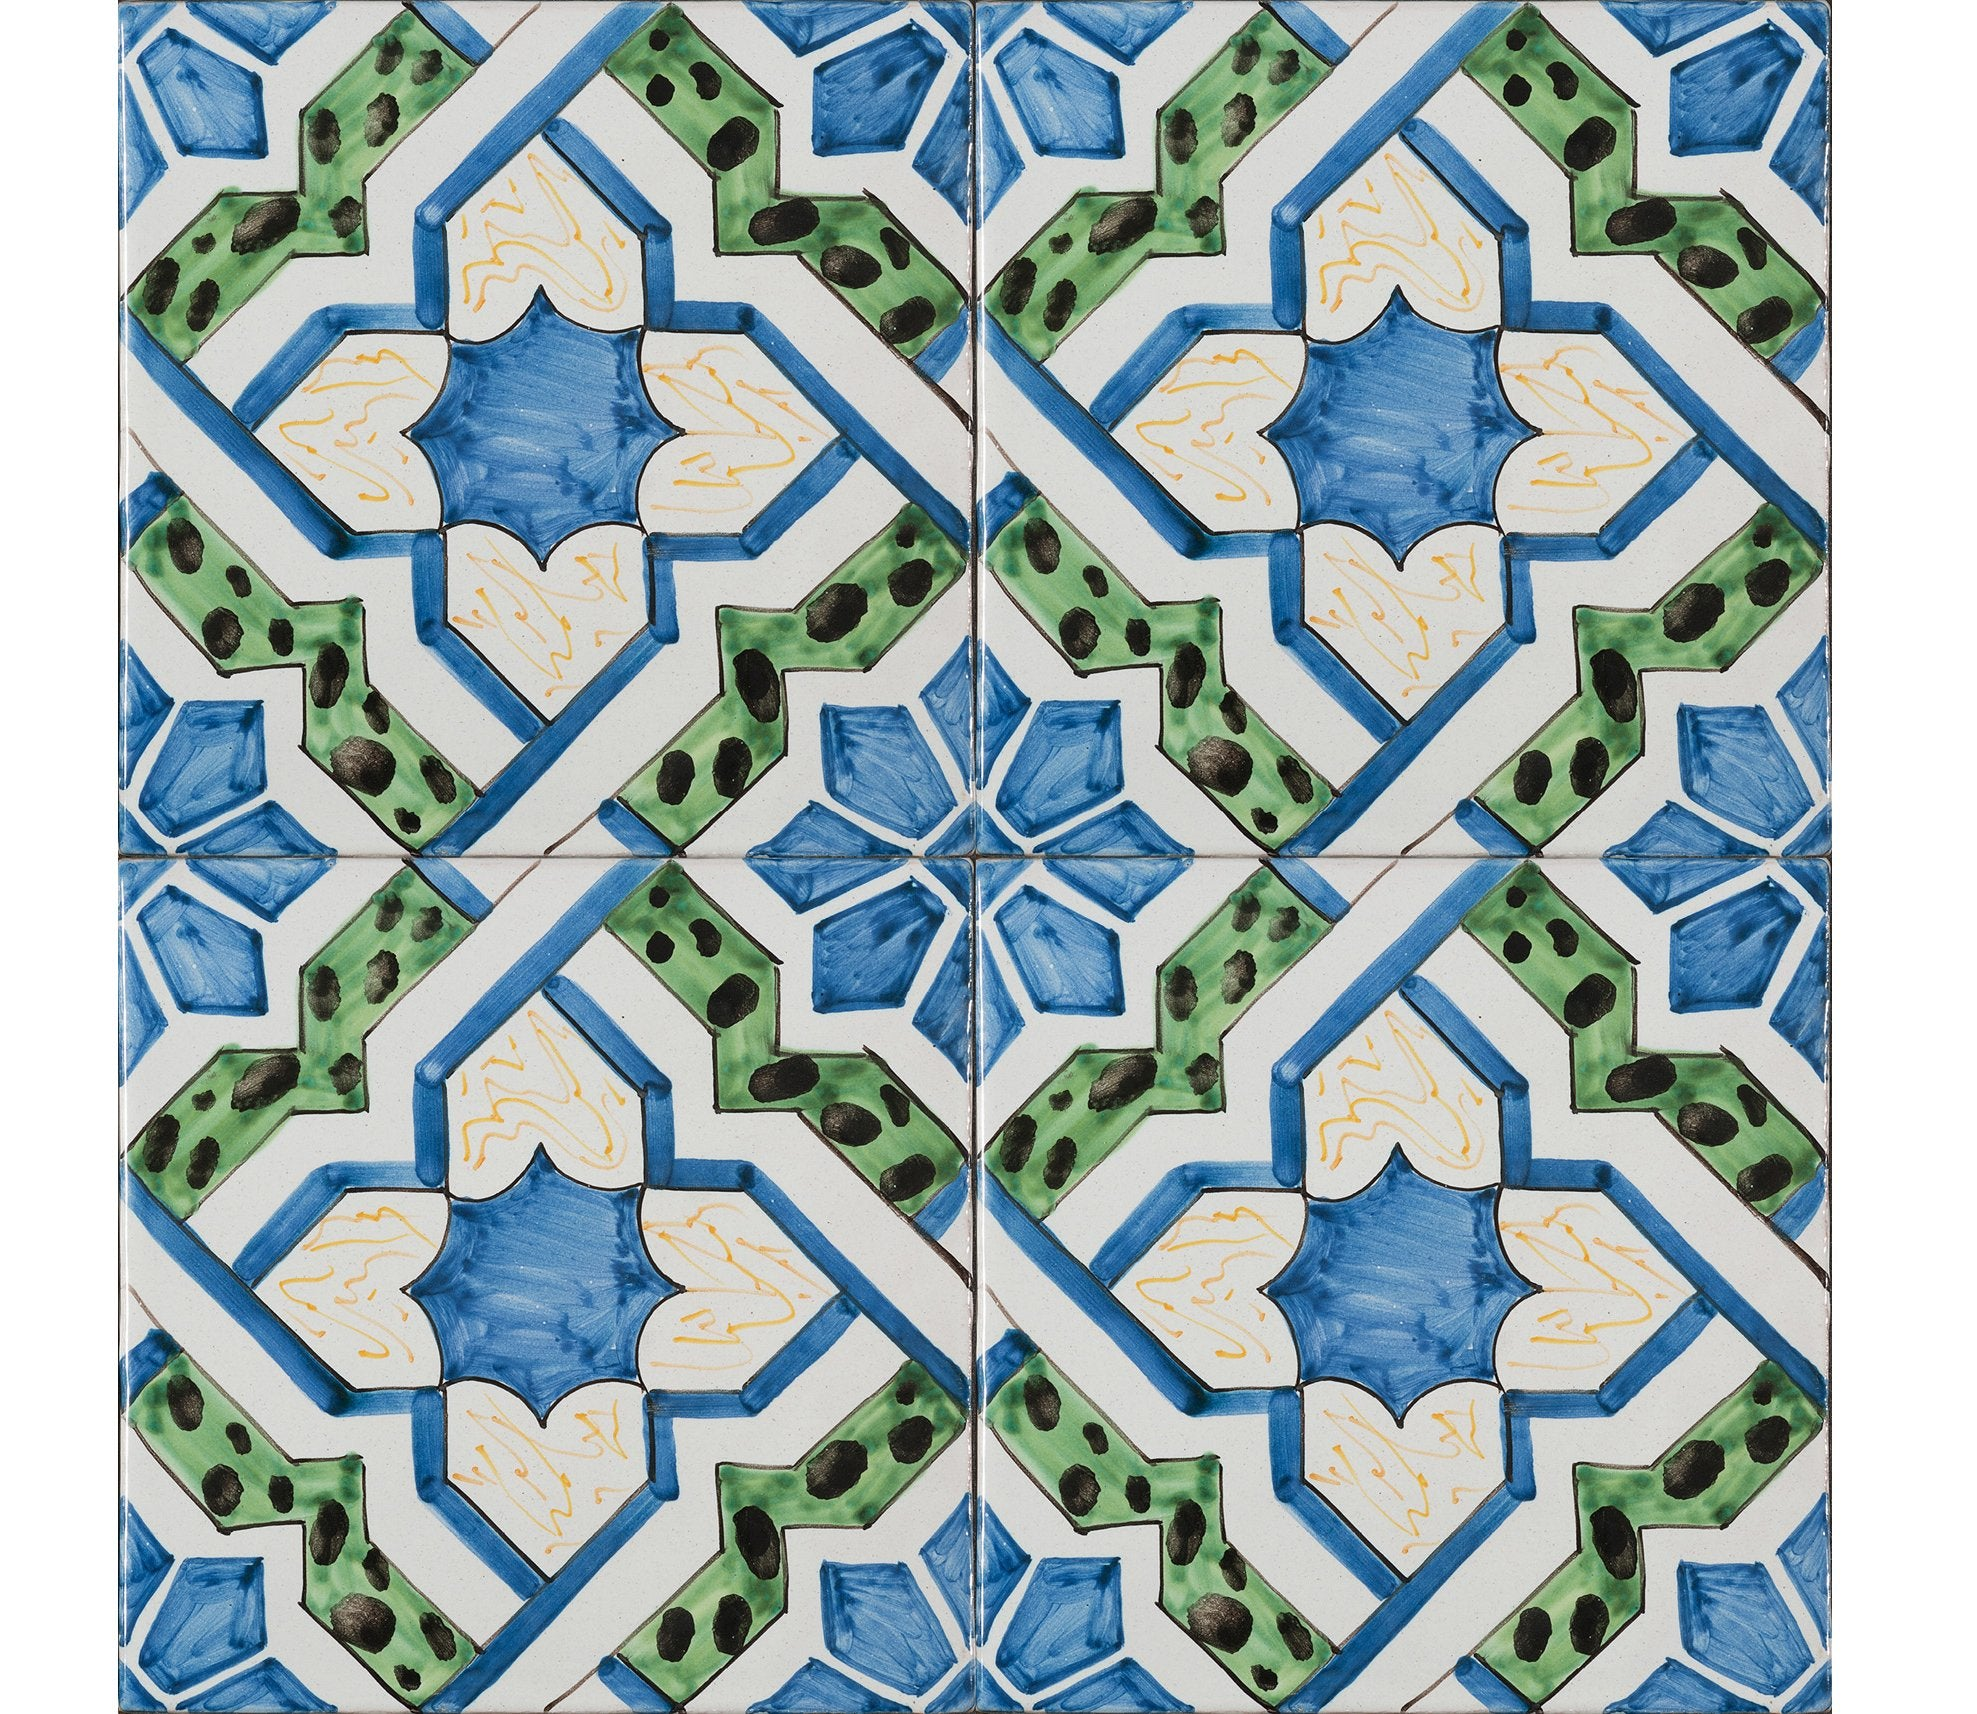 Series S Handpainted Tiles Product Image 34